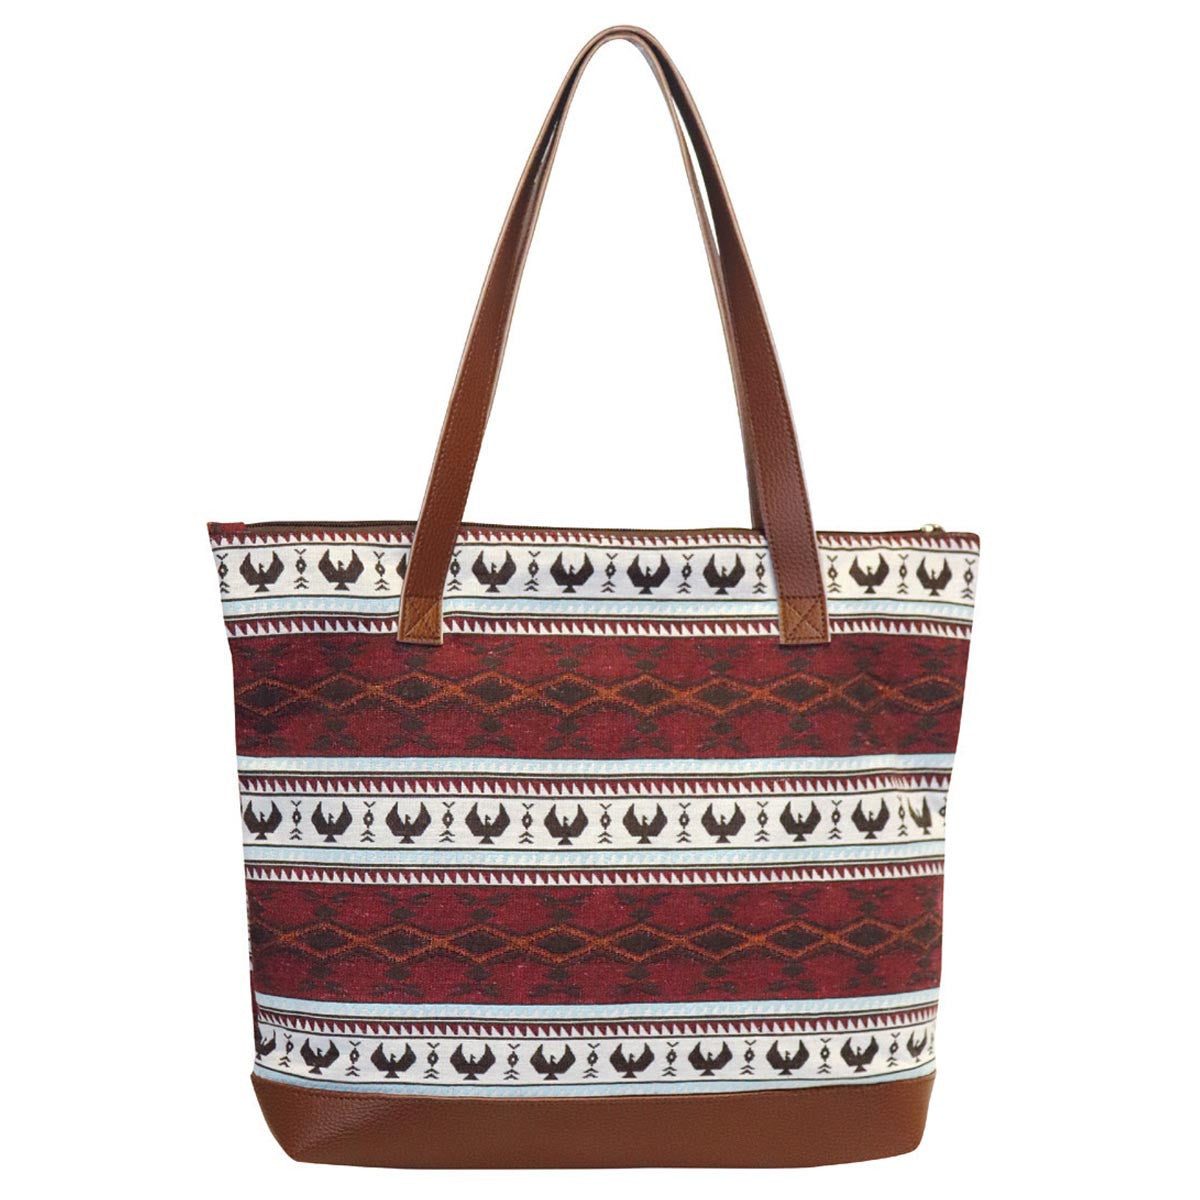 Woven Tote Bag - by Leila Stogan